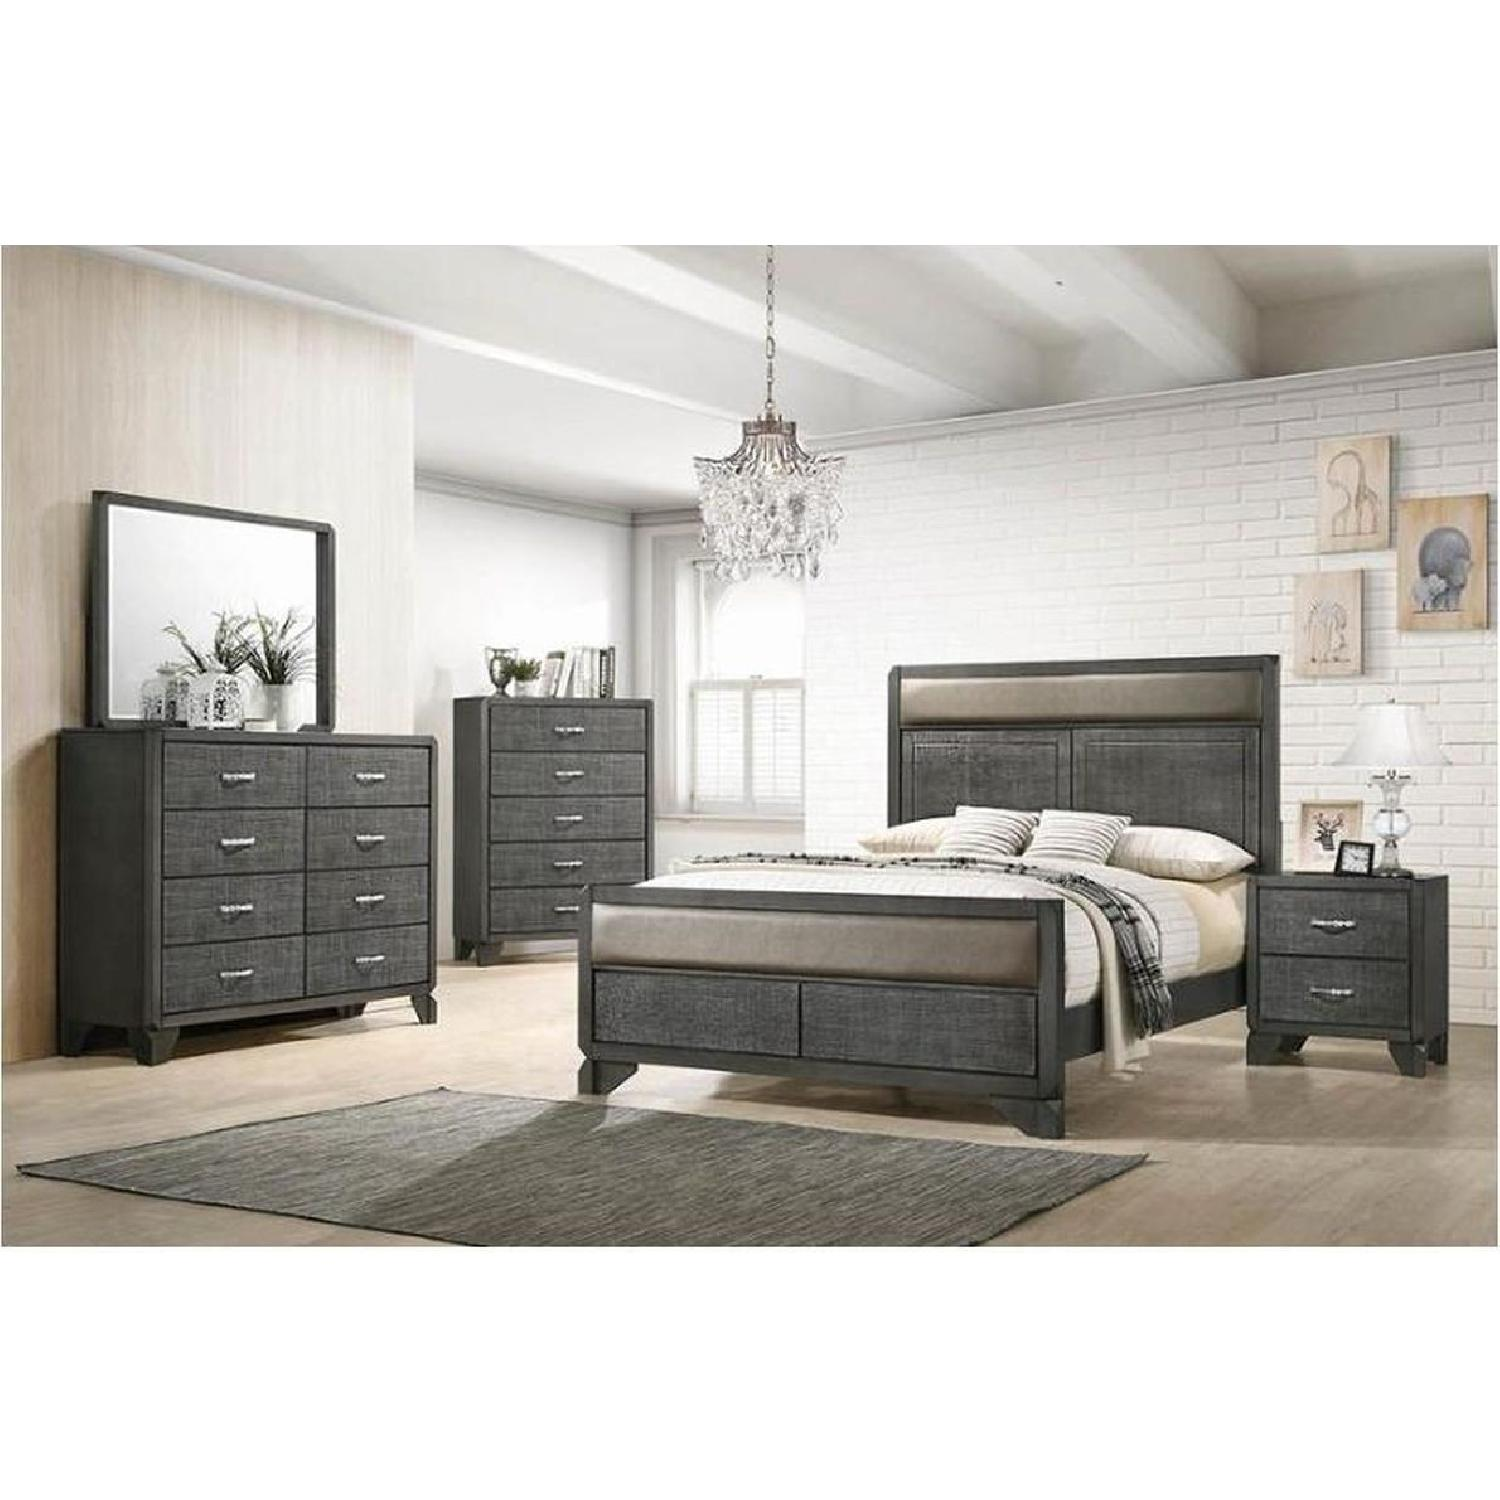 2-Drawer Nightstand in Caviar Finish w/ Woven Texture Front - image-4